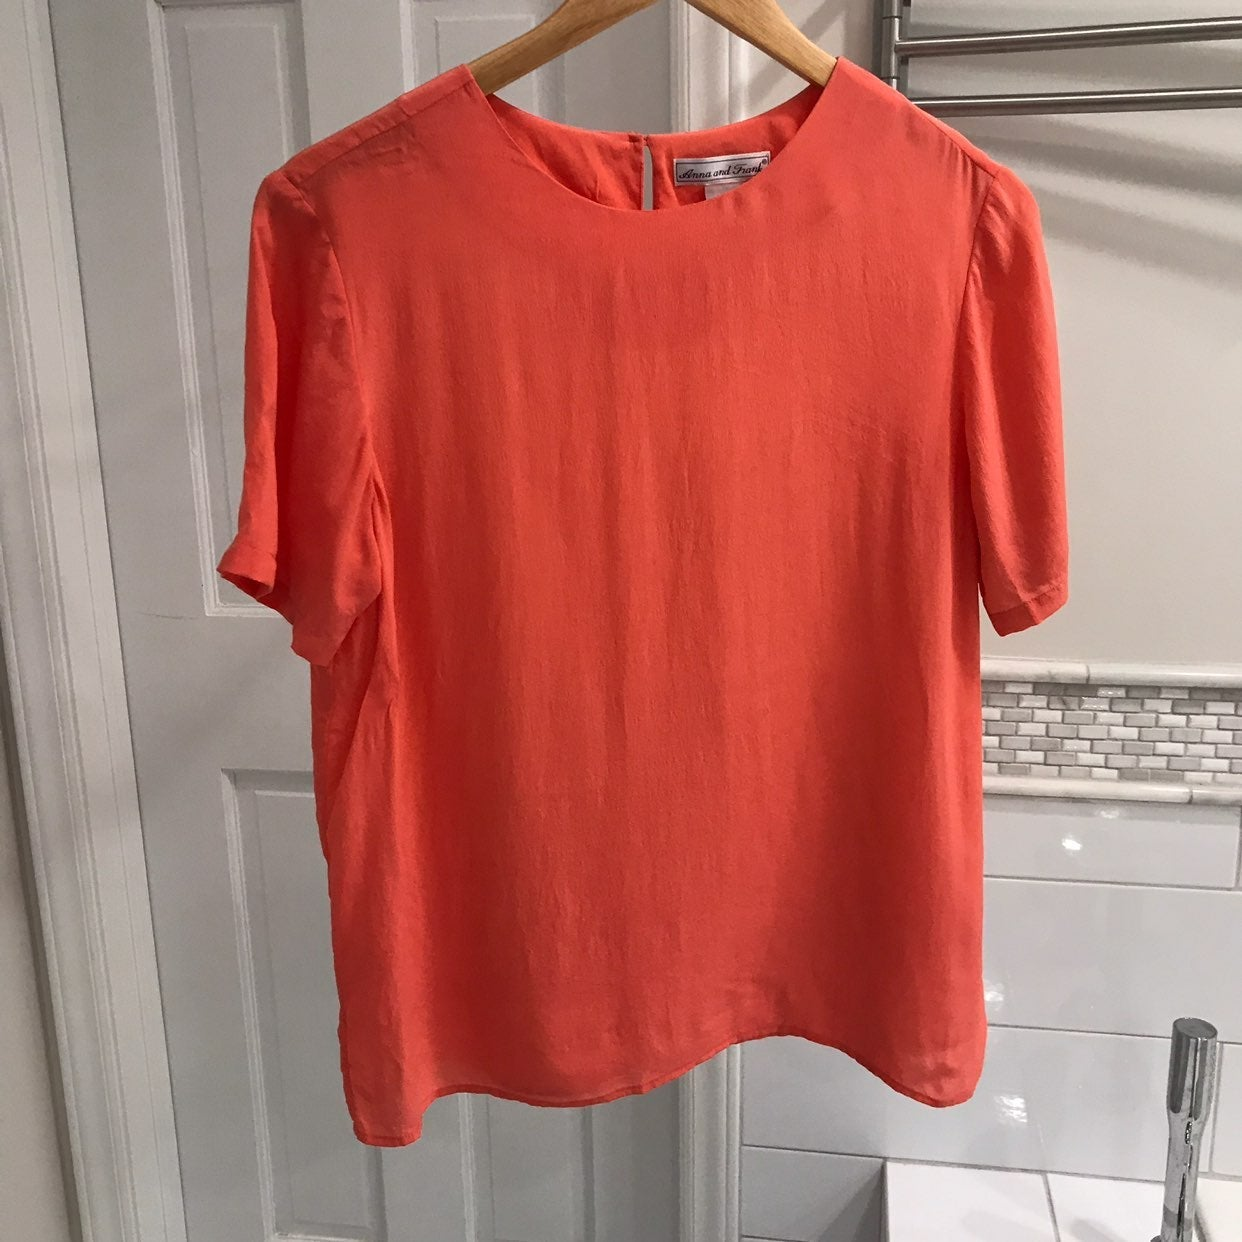 Anna and Frank Silk Coral Top Sz M